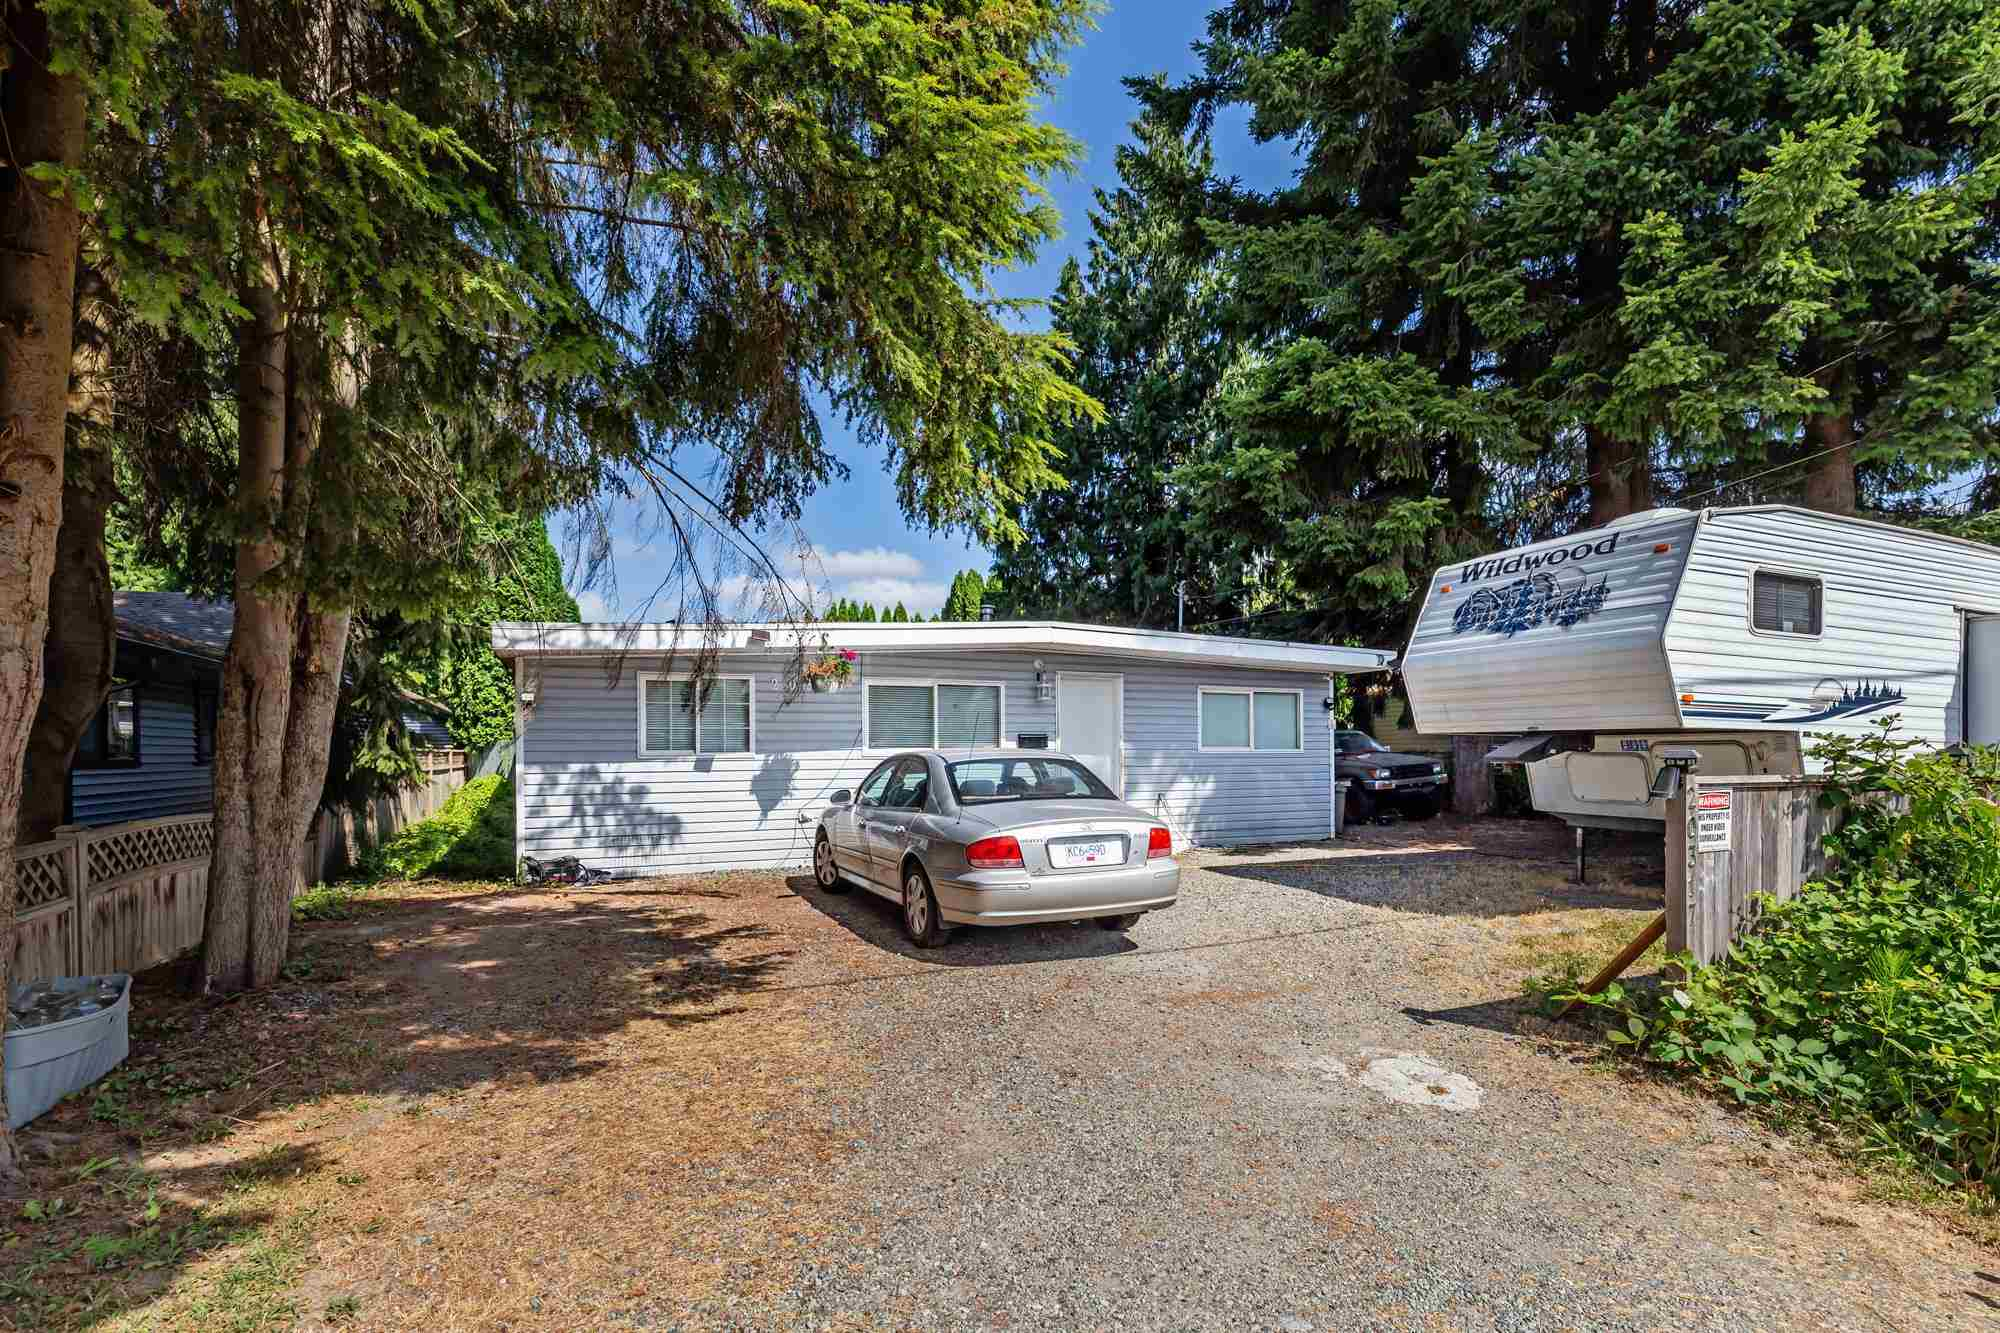 2 lots side by side, See MLS # R2603345. Hammond Rancher on 7200 sq ft lot, 3 bed 1 bath. Detached 16x 24 shop. Fully Fenced with abundant parking. Location within walking distance to River and ideal for commuters close to Golden ears Bridge. Currently Tenanted, Do Not Disturb.